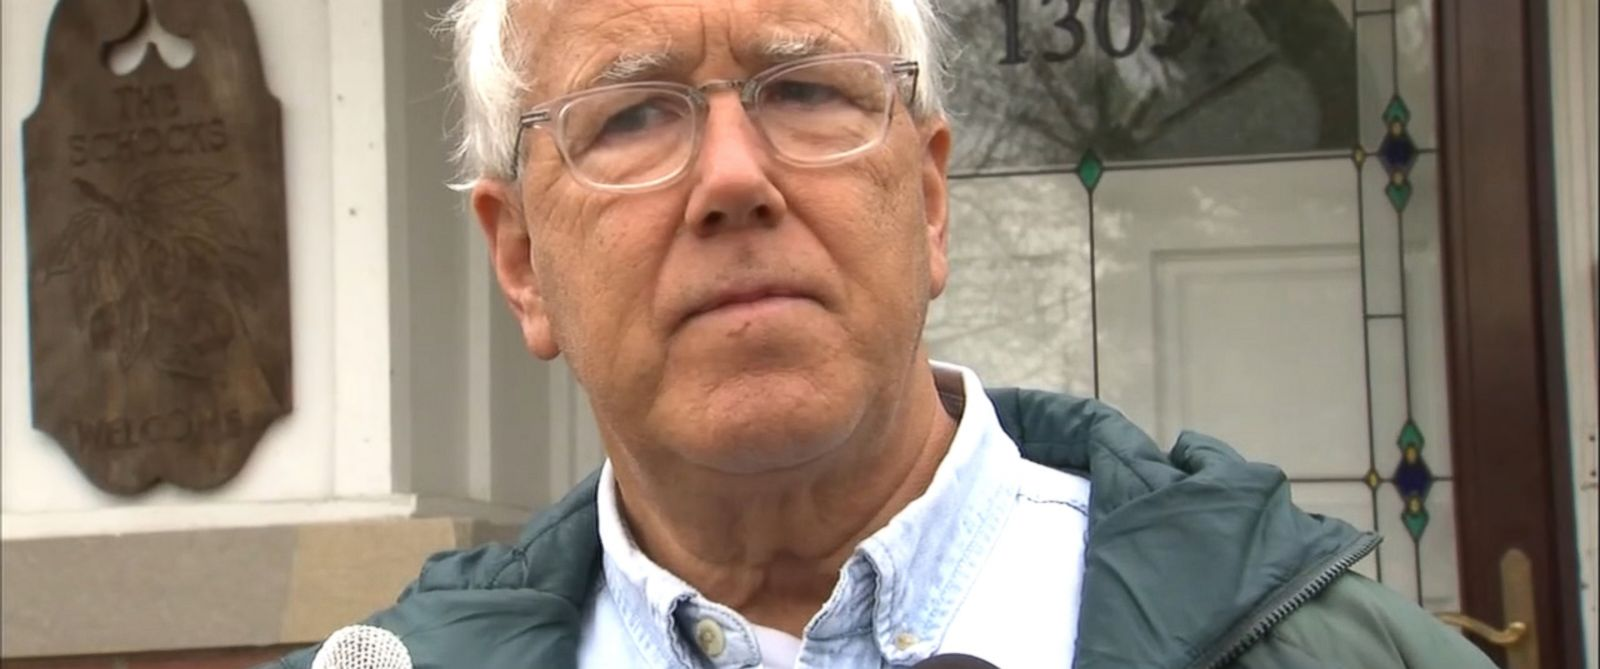 PHOTO: Dr. Richard Schock, father of Aaron Schock, is interviewed by WLS-TV.